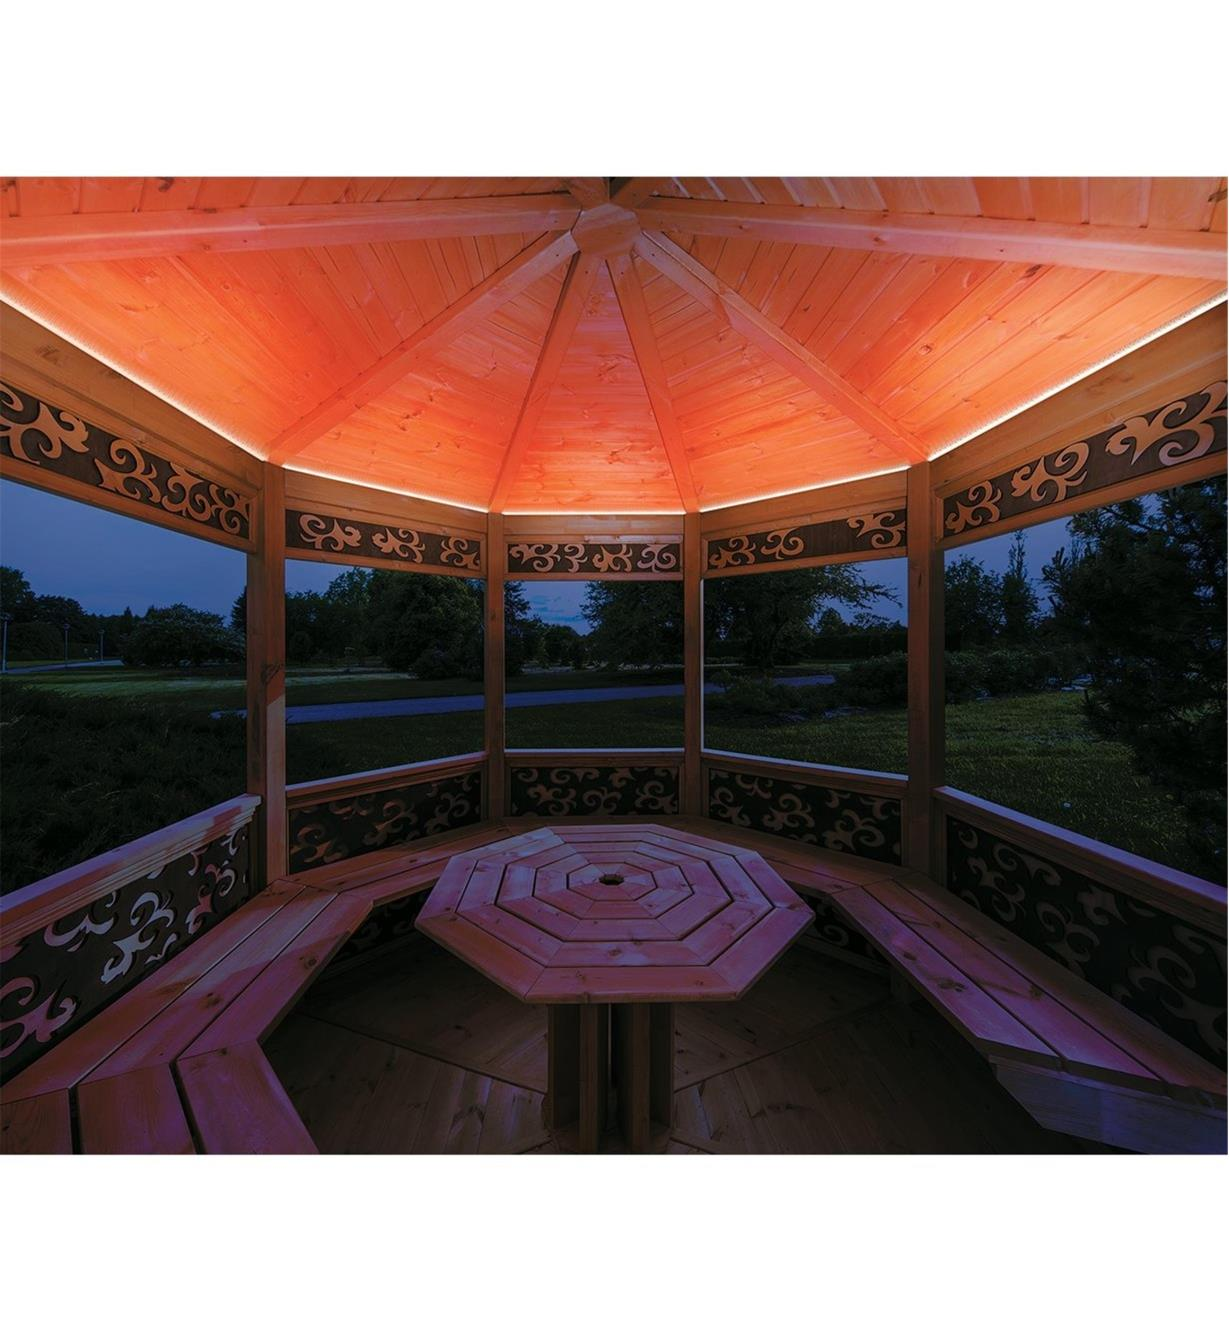 Example of color-controlled (RGB) LED lights installed in a gazebo